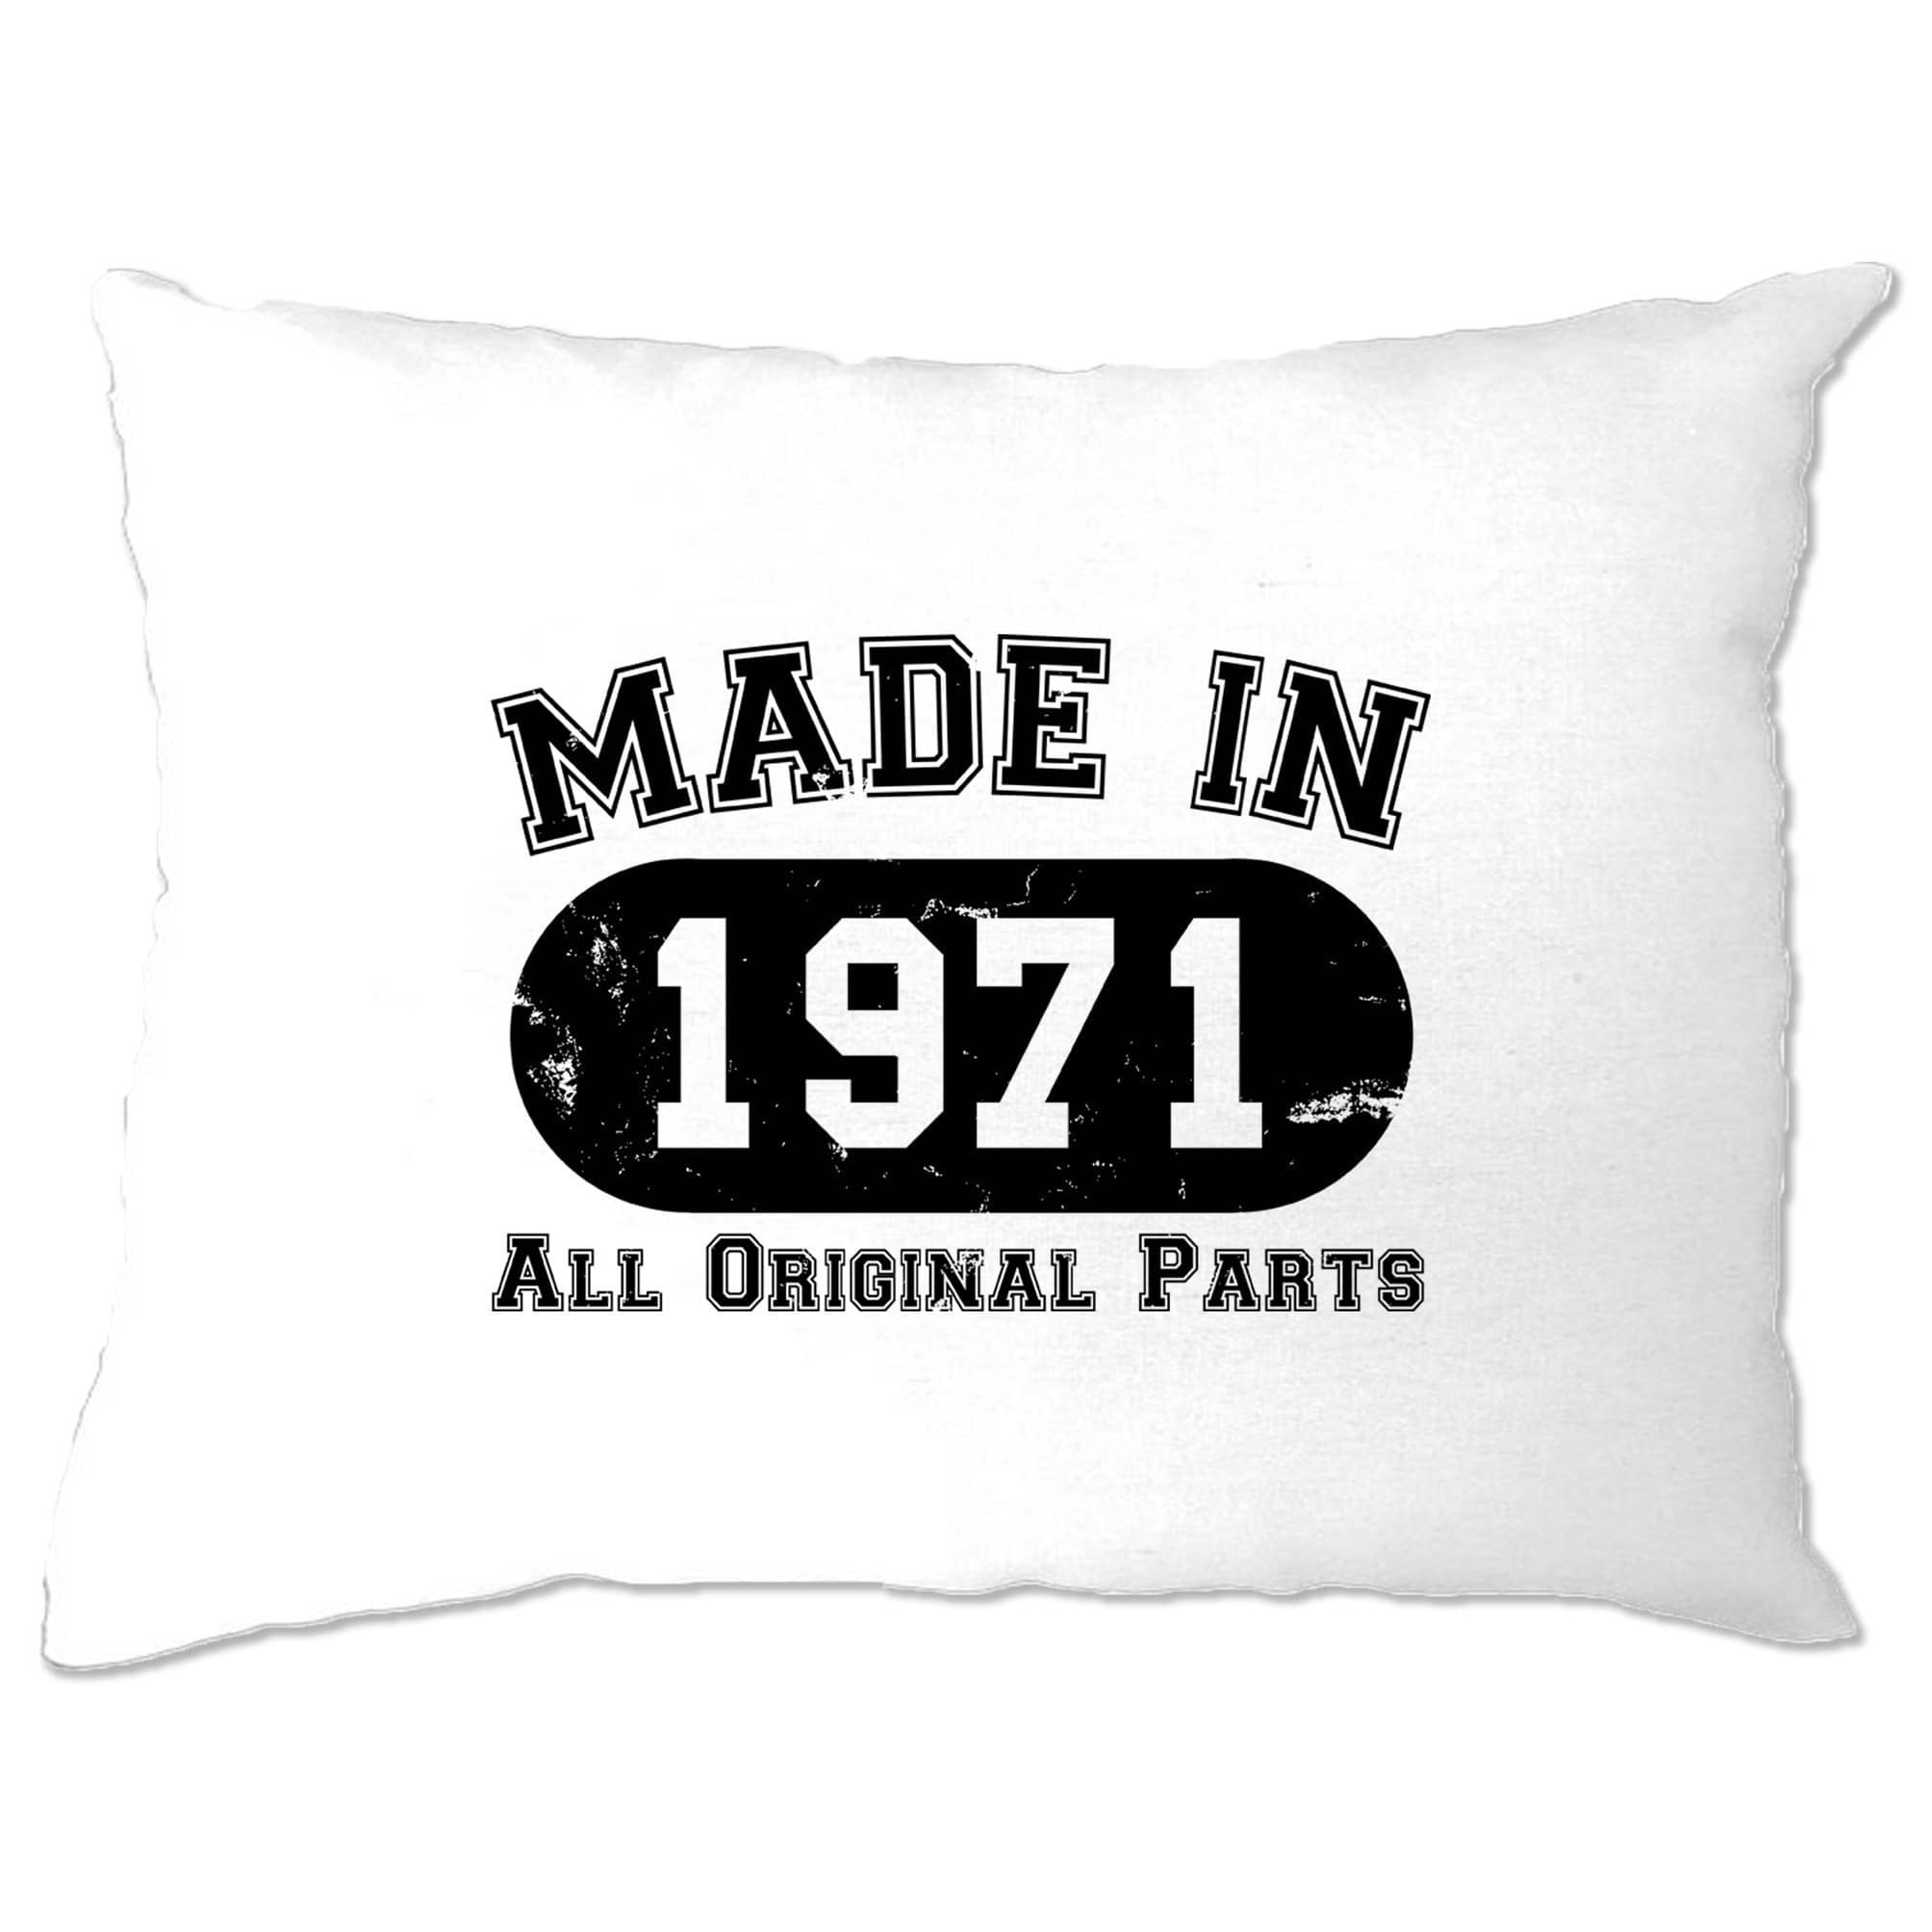 Made in 1971 All Original Parts Pillow Case [Distressed]